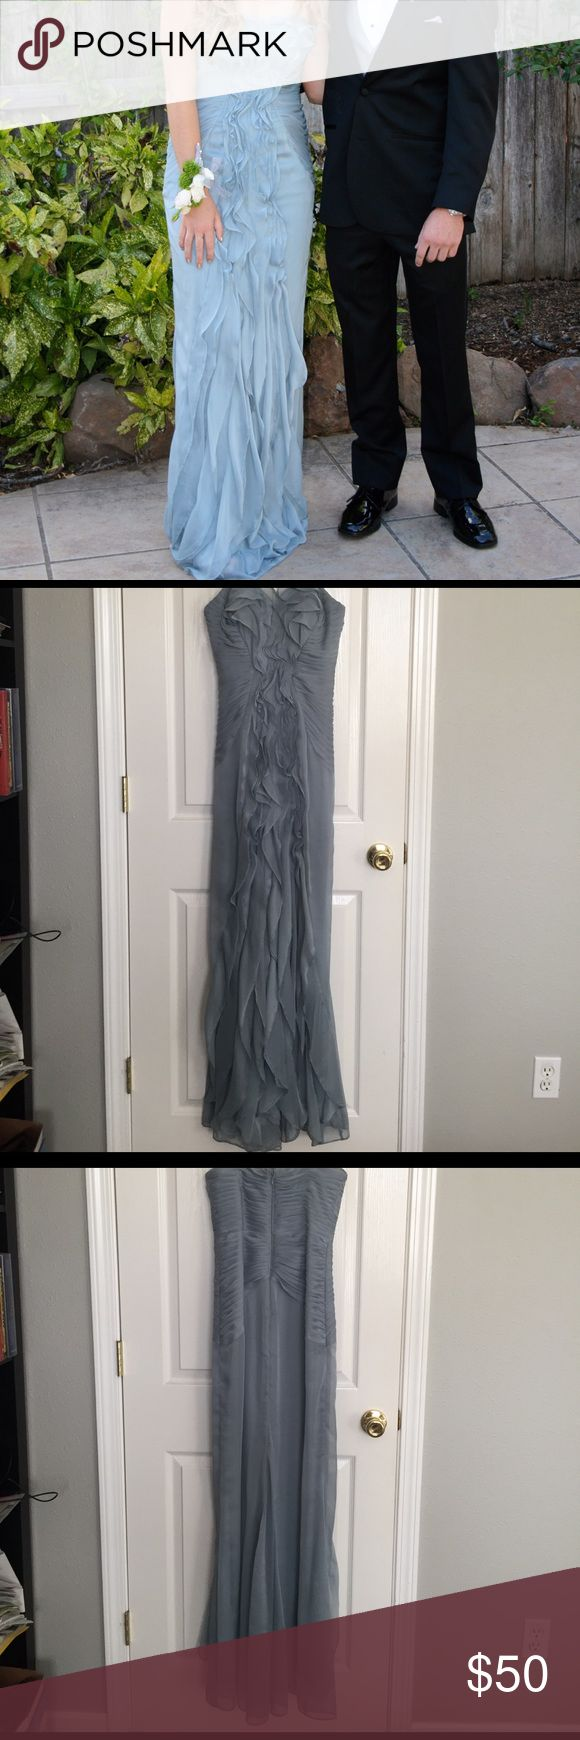 Prom dress Really nice prom dress worn once. Has some minor dirt stains on the bottom but they aren't noticeable when wearing the dress. Feel free to ask questions. Offers welcomed ☺️ Dresses Prom